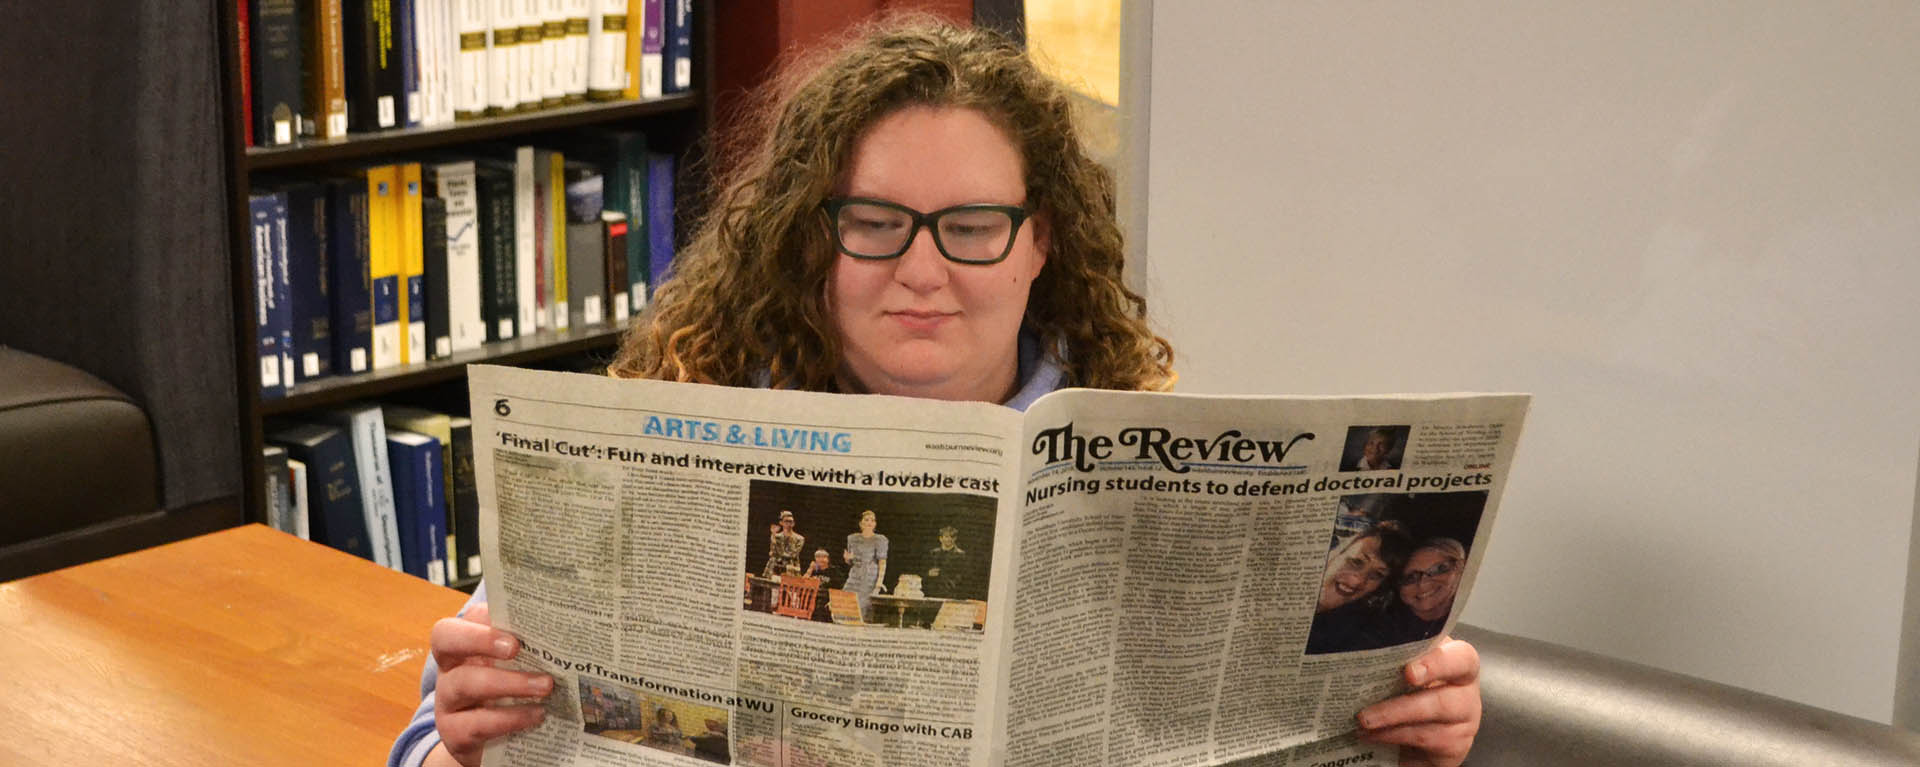 Student in library reading newspaper